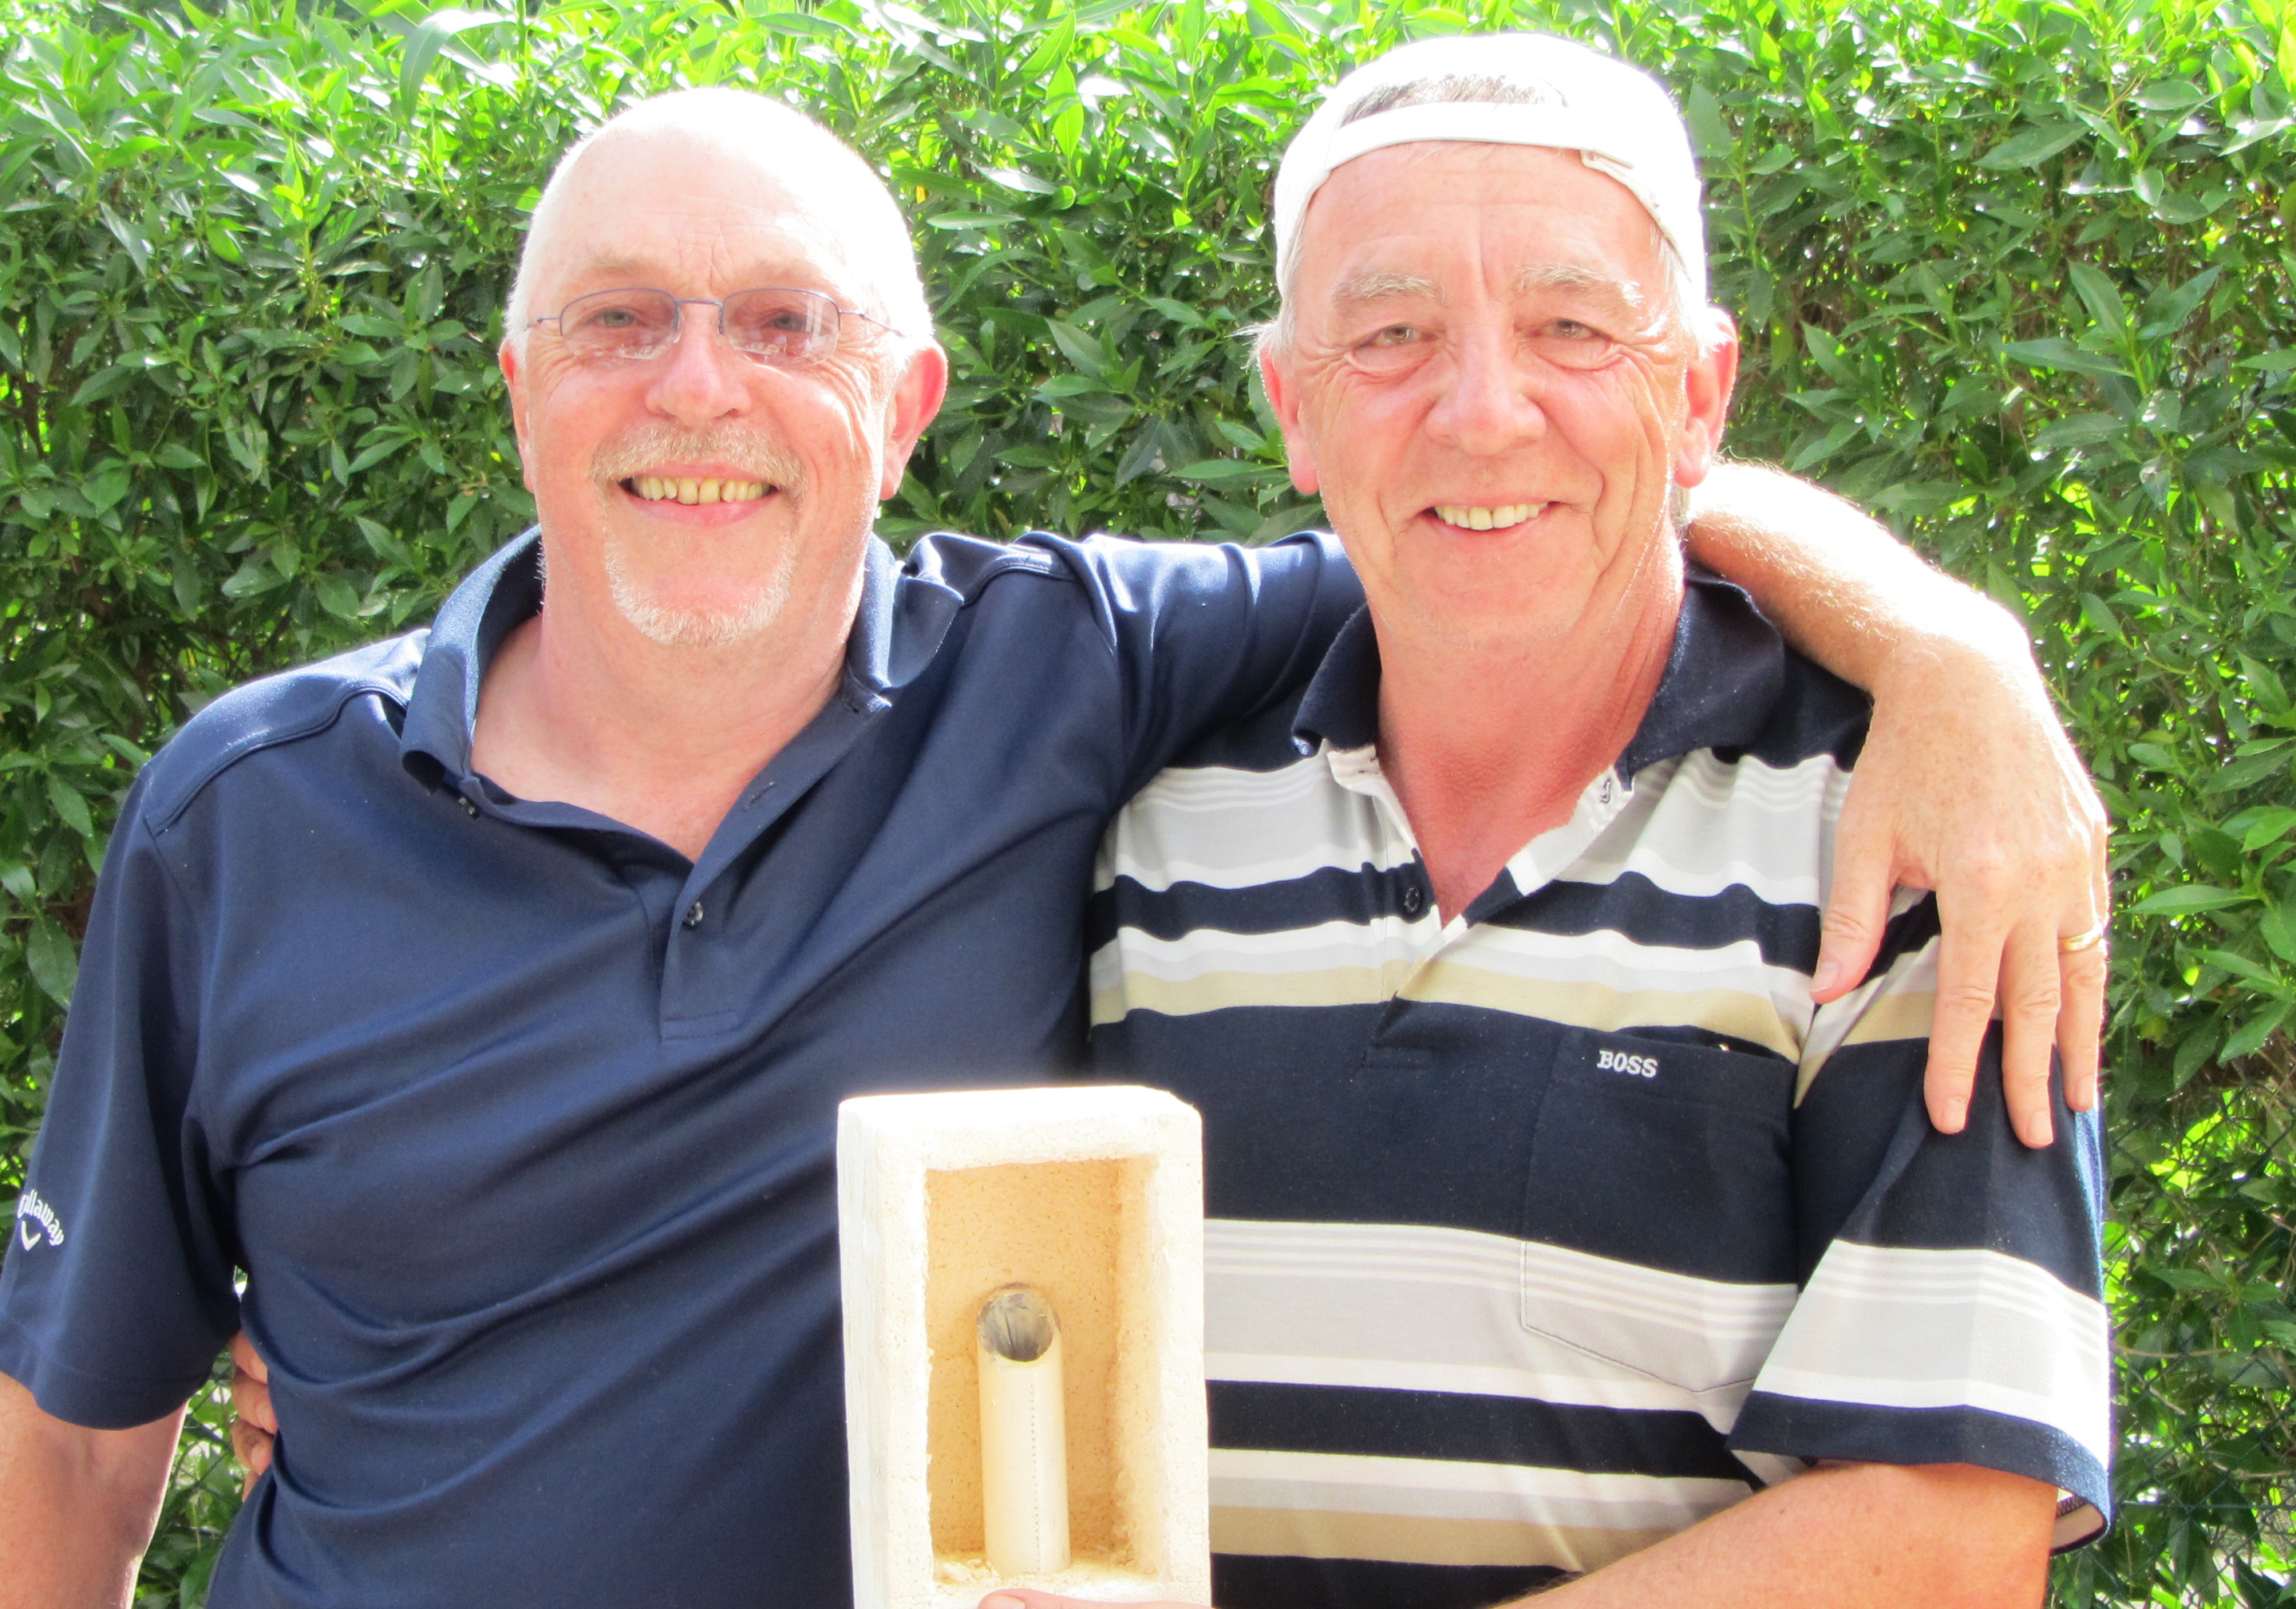 Lutterworth Cash Confrontation as Lord Chilly and Hoppy Take Sunny Victory!